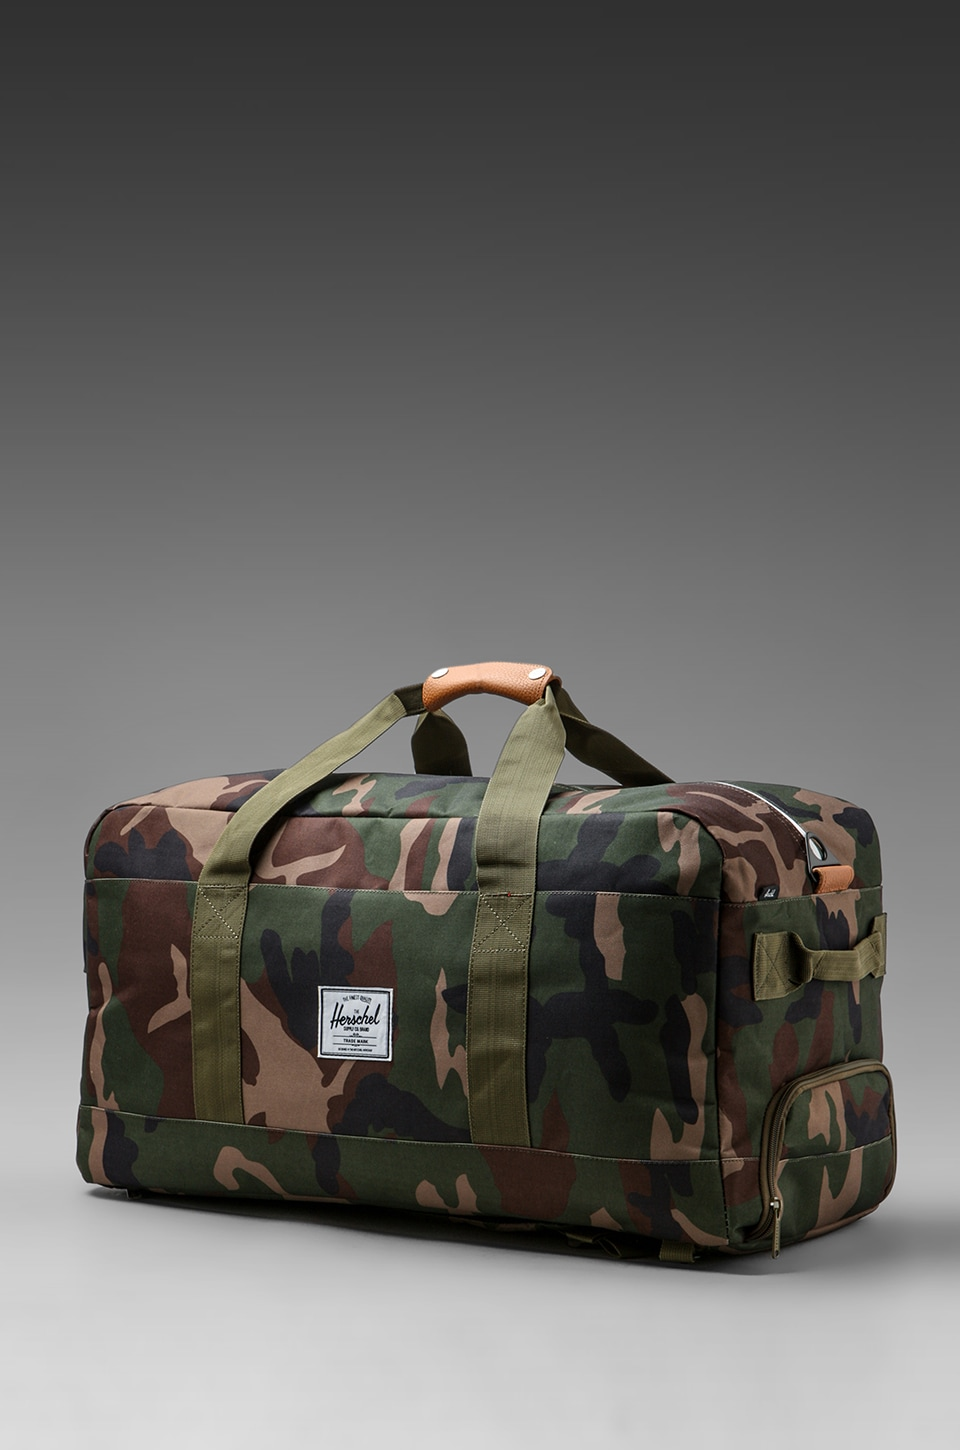 Herschel Supply Co. Outfitter Duffle in Woodland Camo